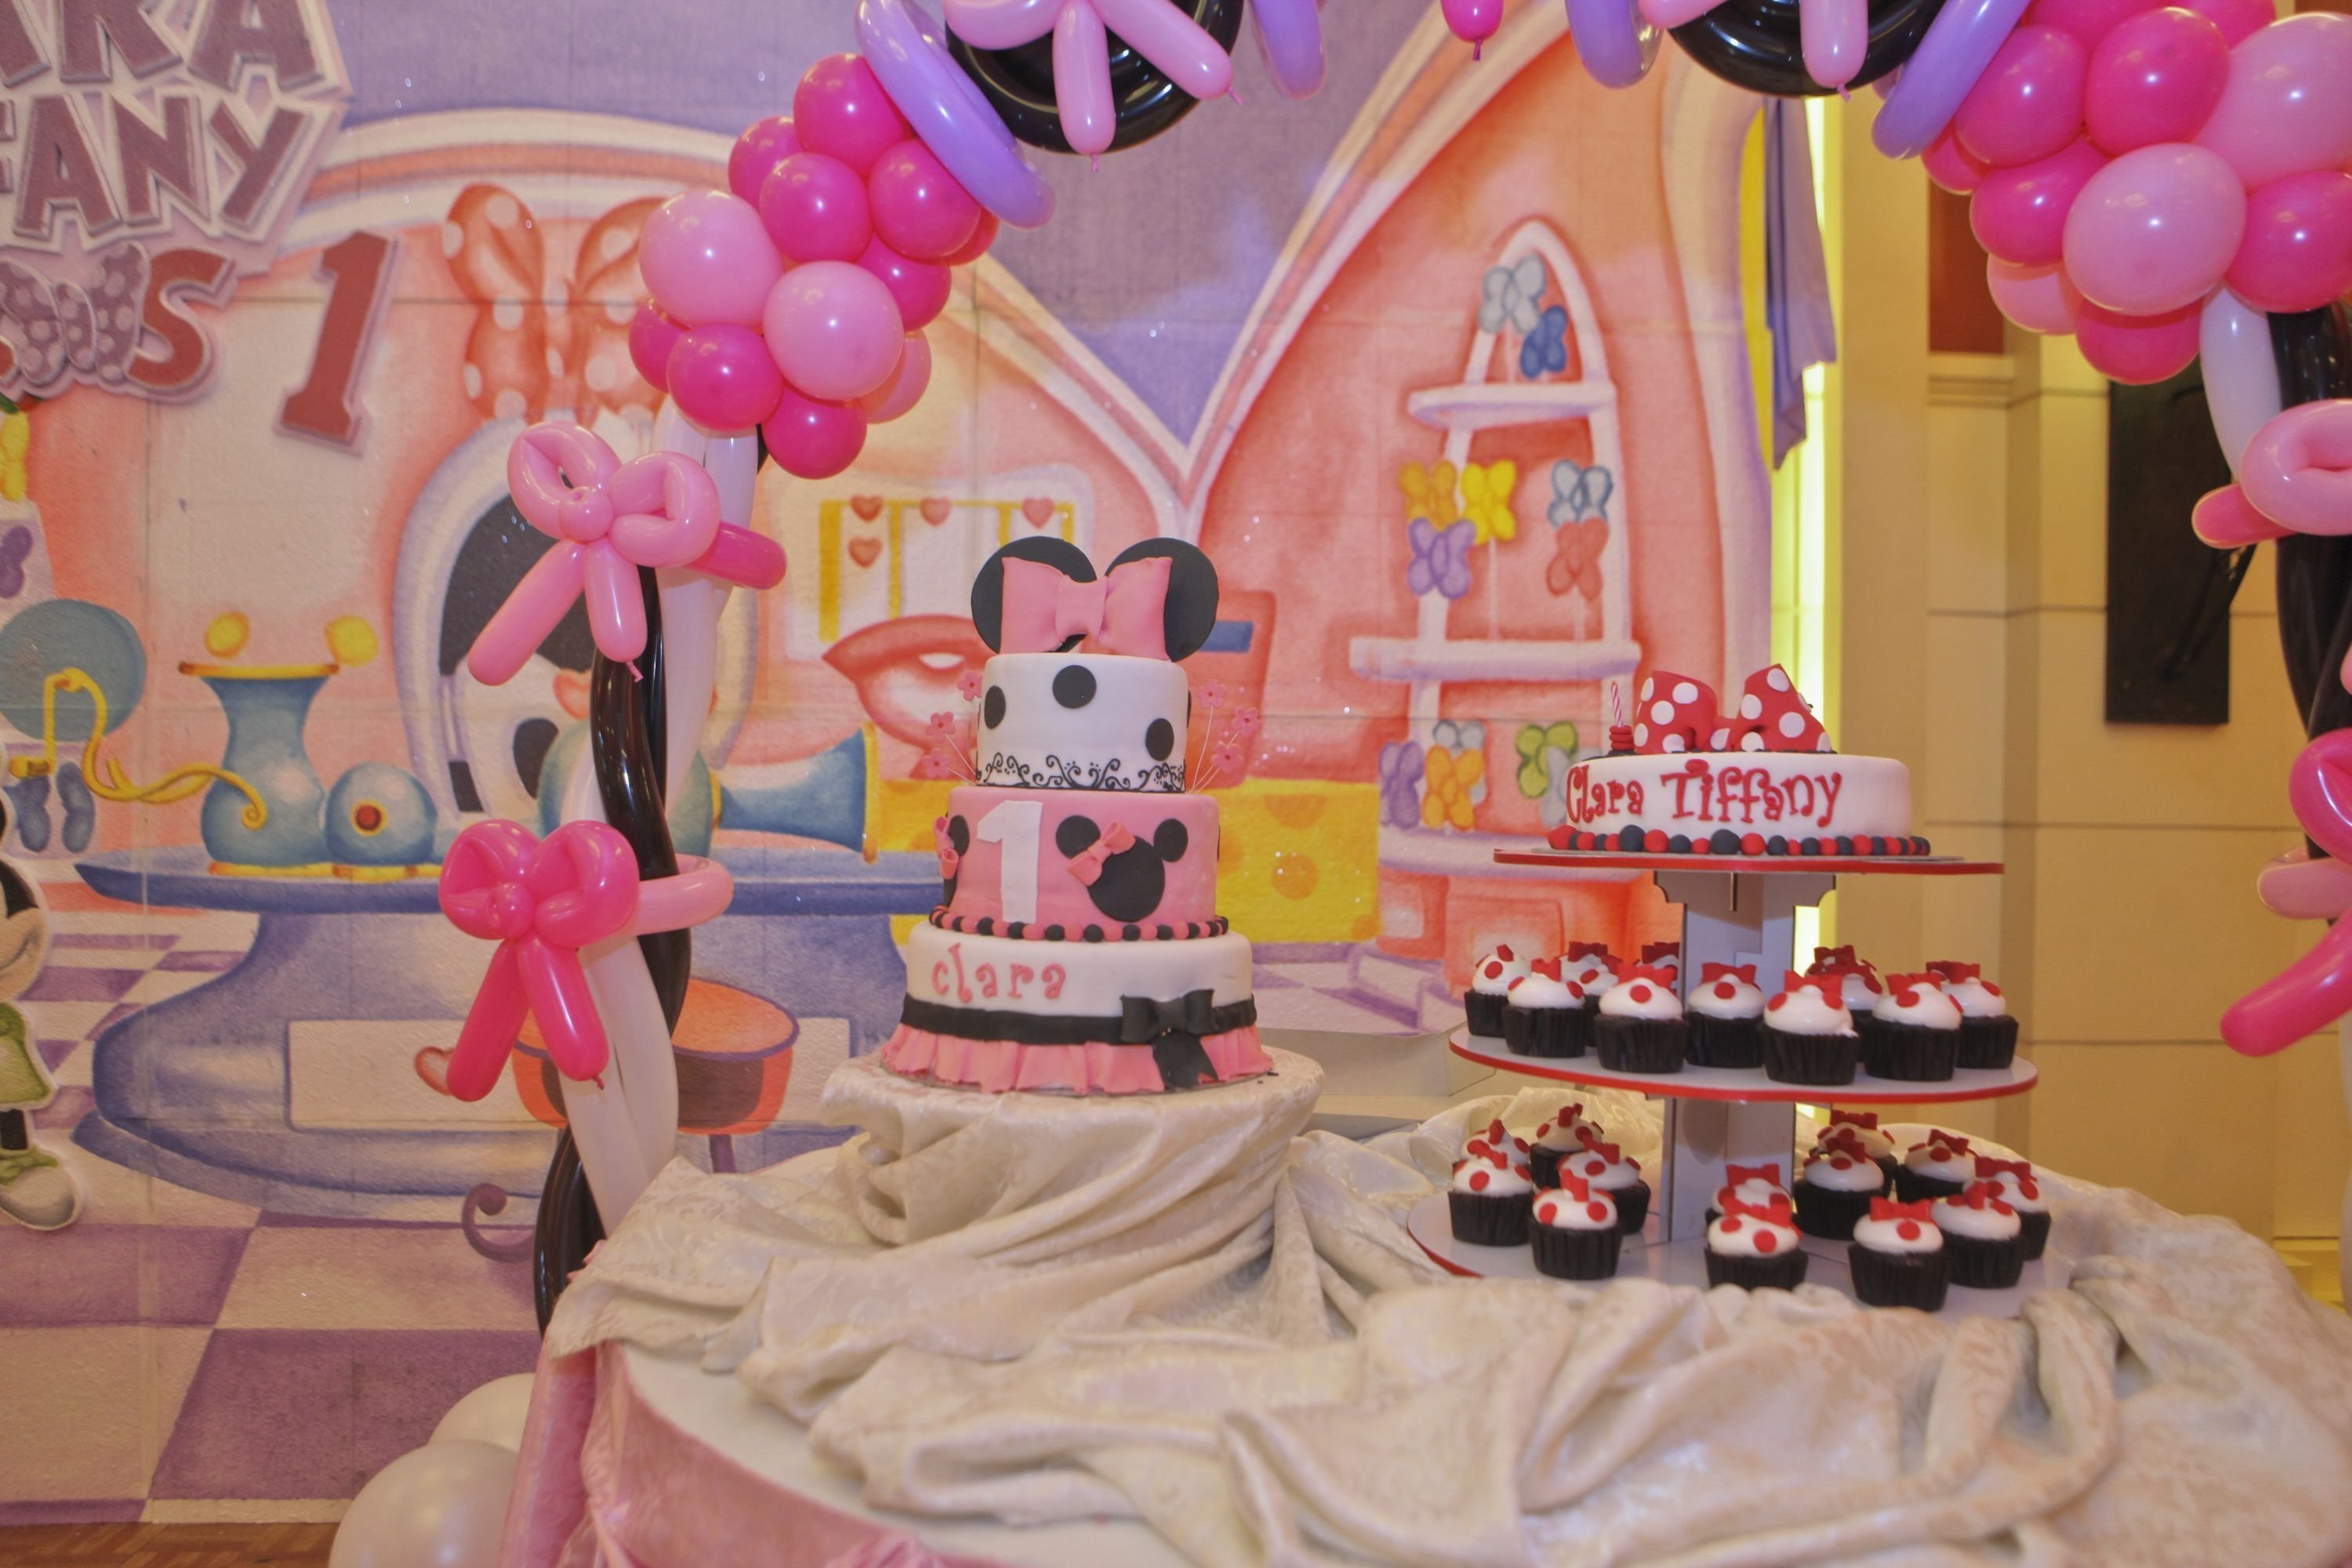 10 Wonderful Minnie Mouse Bowtique Party Ideas minnie mouse bow toons cake google search sawyers minnie 2020